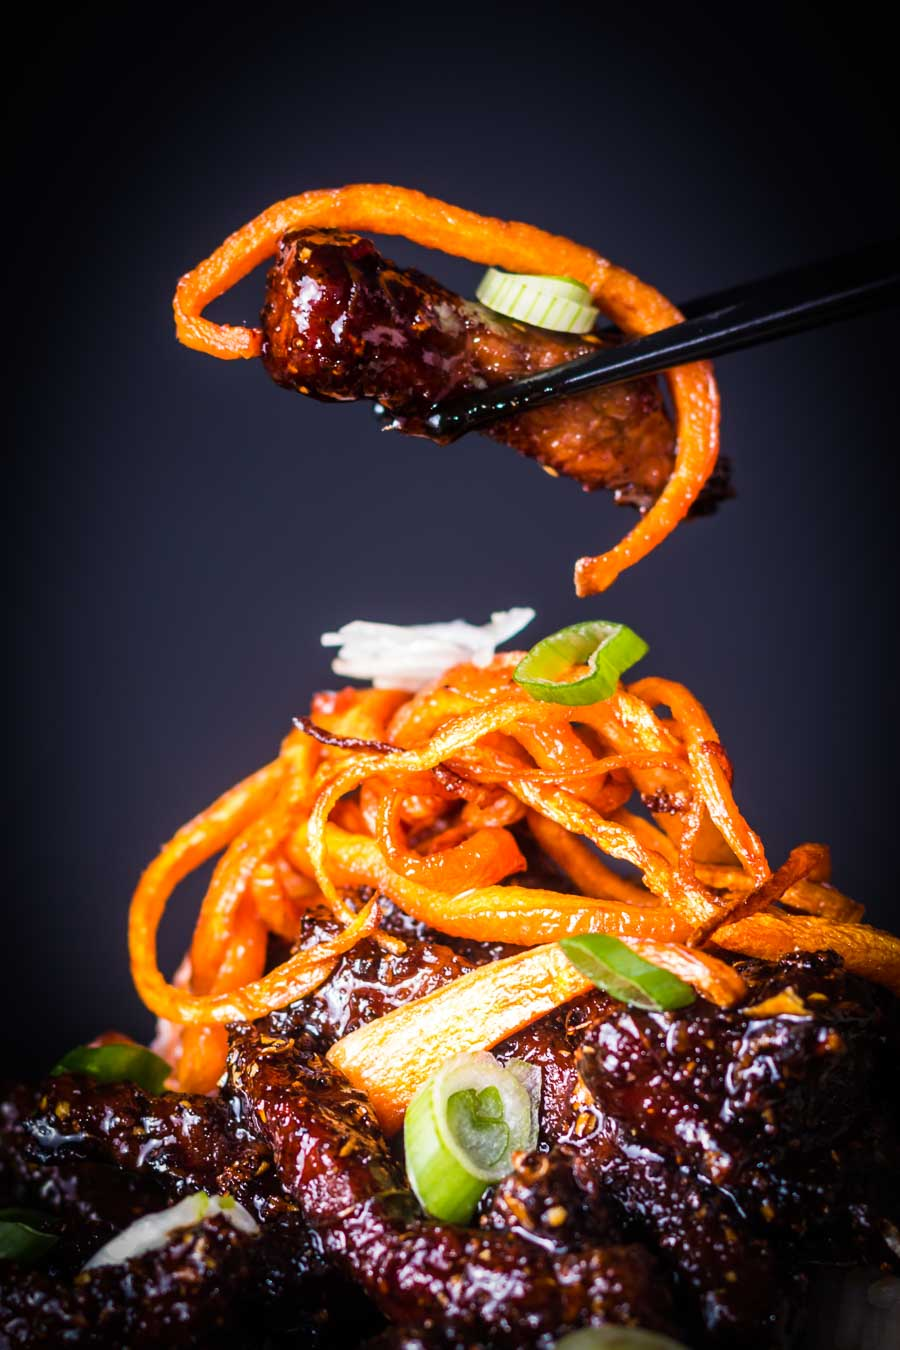 Sticky Chili Beef is my idea of an indulgent treat, sure it is not the most 'health conscious' meal but boy does it taste fantastic!l